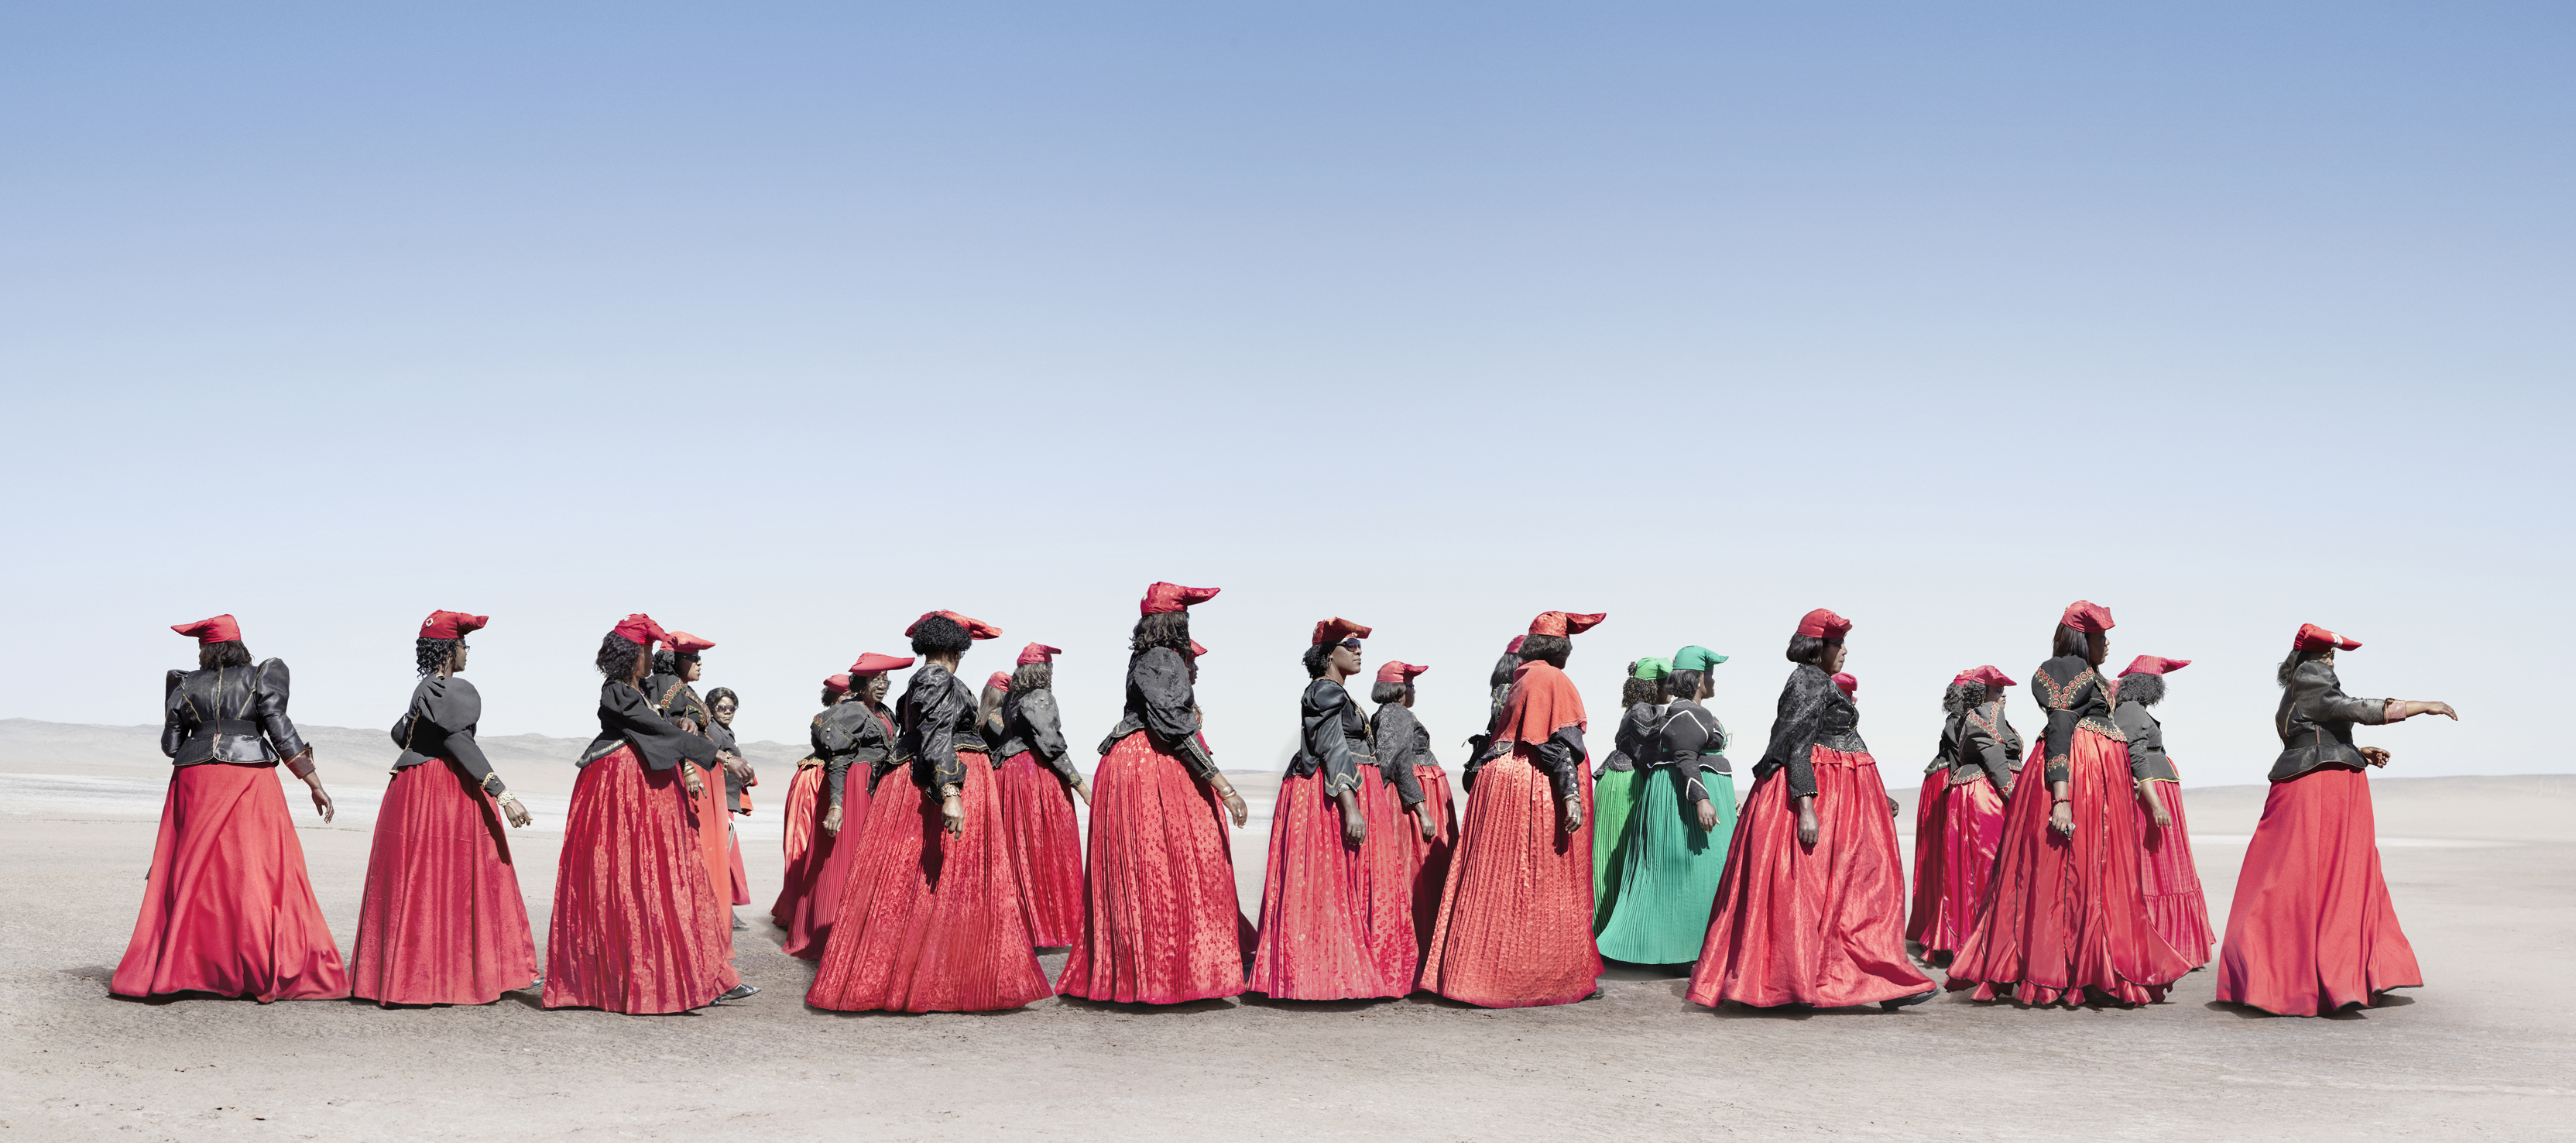 Conspicuous by their presence, two women from the Otjigrine section of the Otruppe march alongside a group of women from the Otjiserandu. The women's formal, or 'military' dresses are worn on ceremonies and festivals like Herero day, which is held every August to commemorate Herero chiefs of the past.